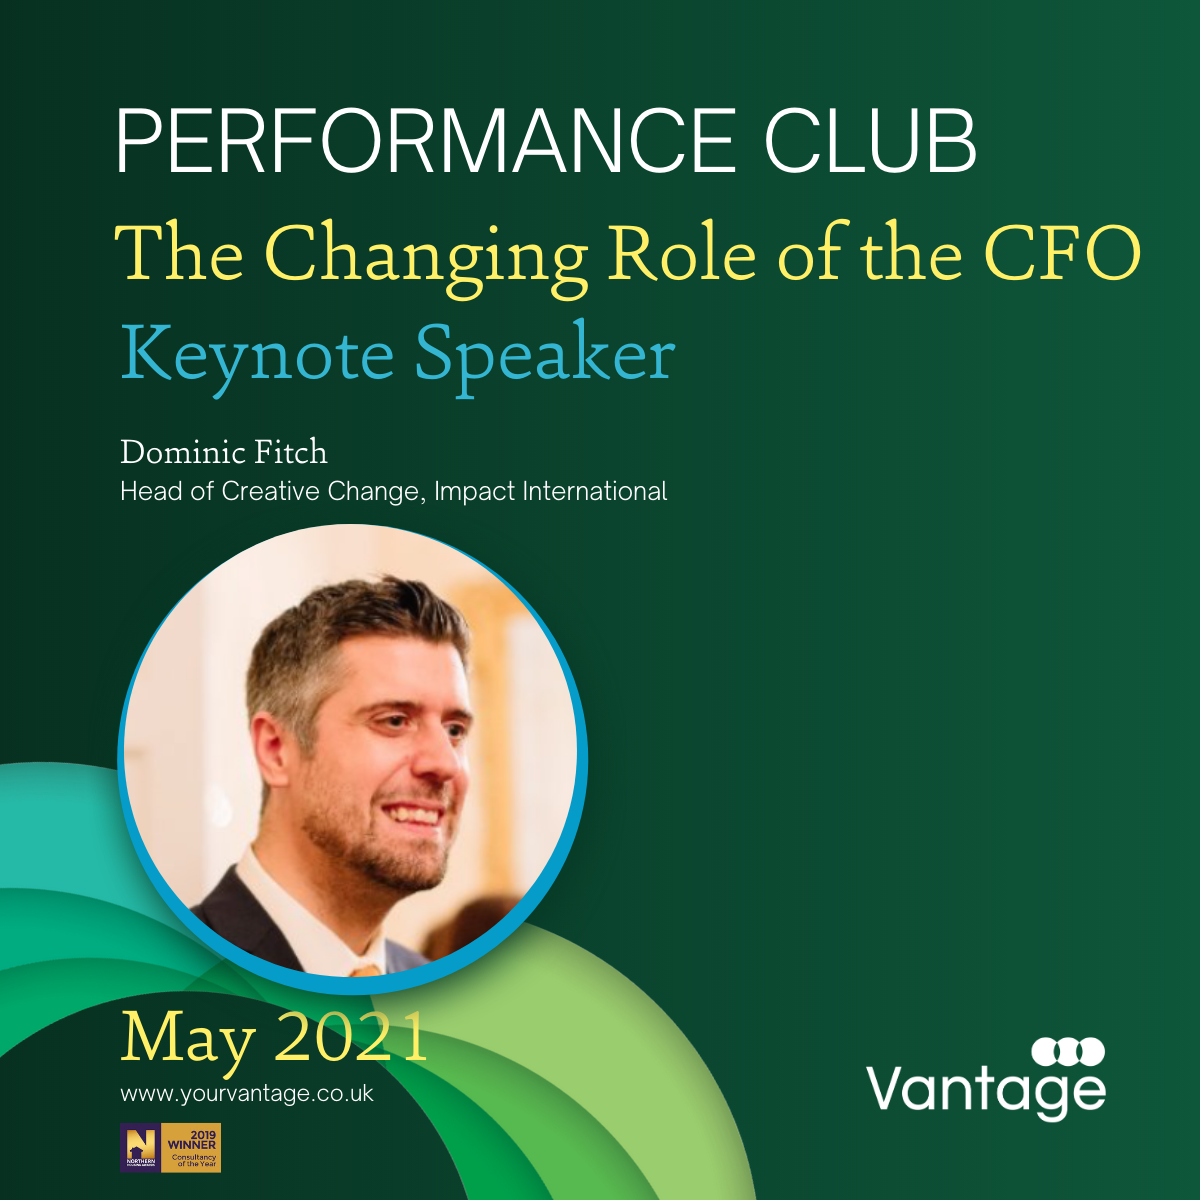 Event: The Changing role of the CFO